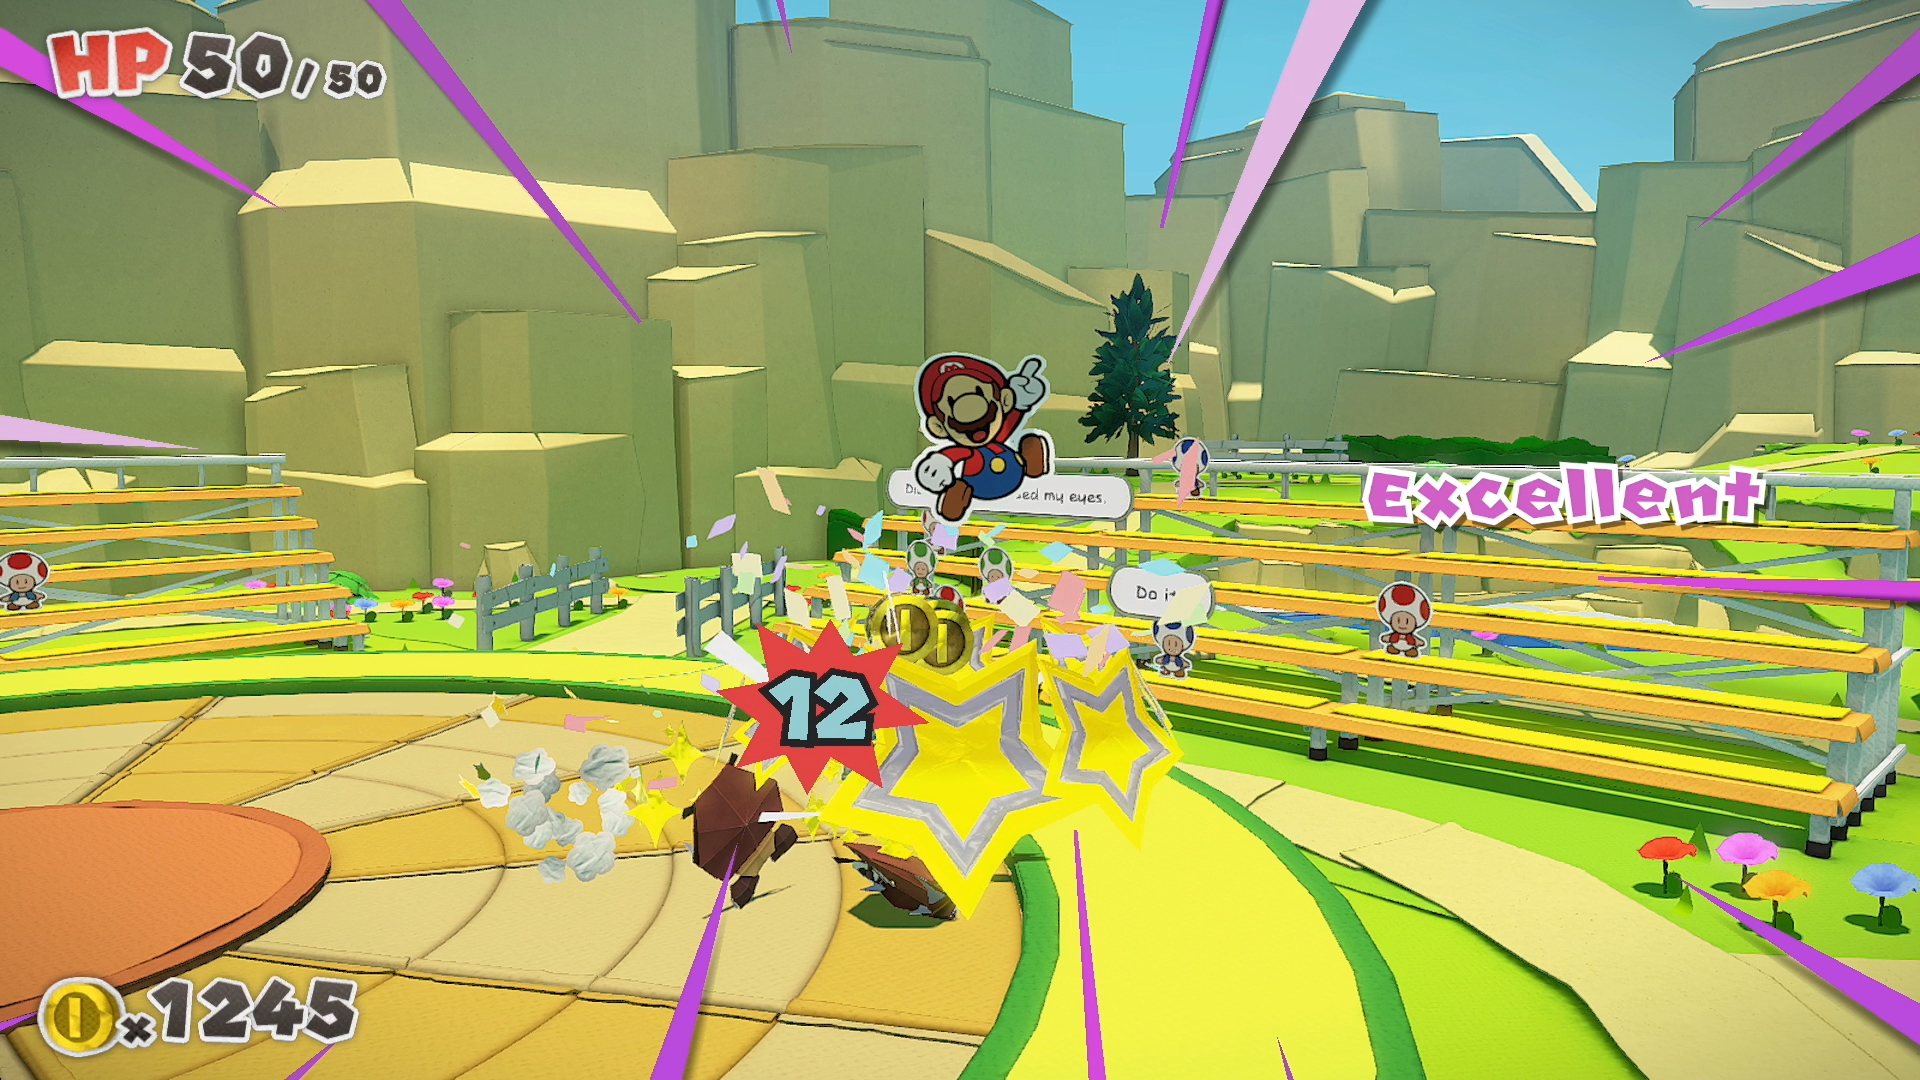 A screenshot from Paper Mario: The Origami King's battle system